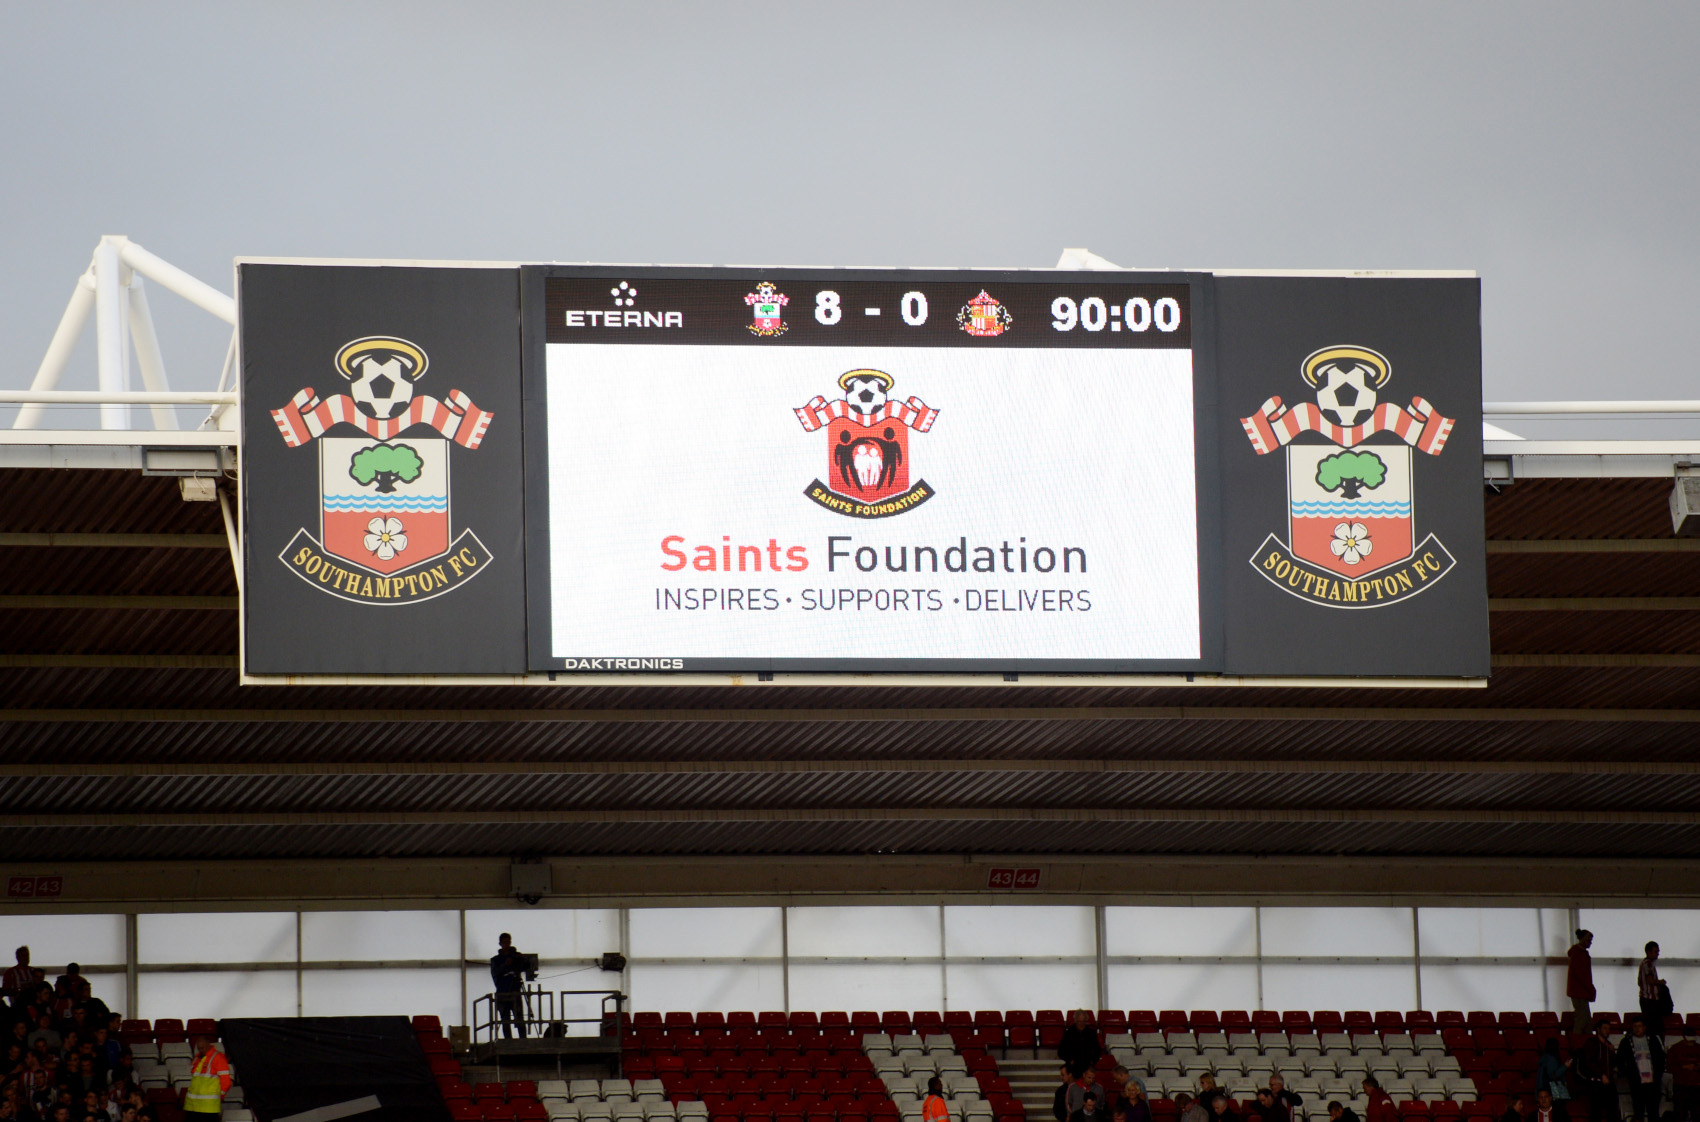 → Southampton's 8-0 thrashing of Sunderland was the biggest win of the season. Who recorded a 23-point haul after scoring once and setting up four goals in that match?